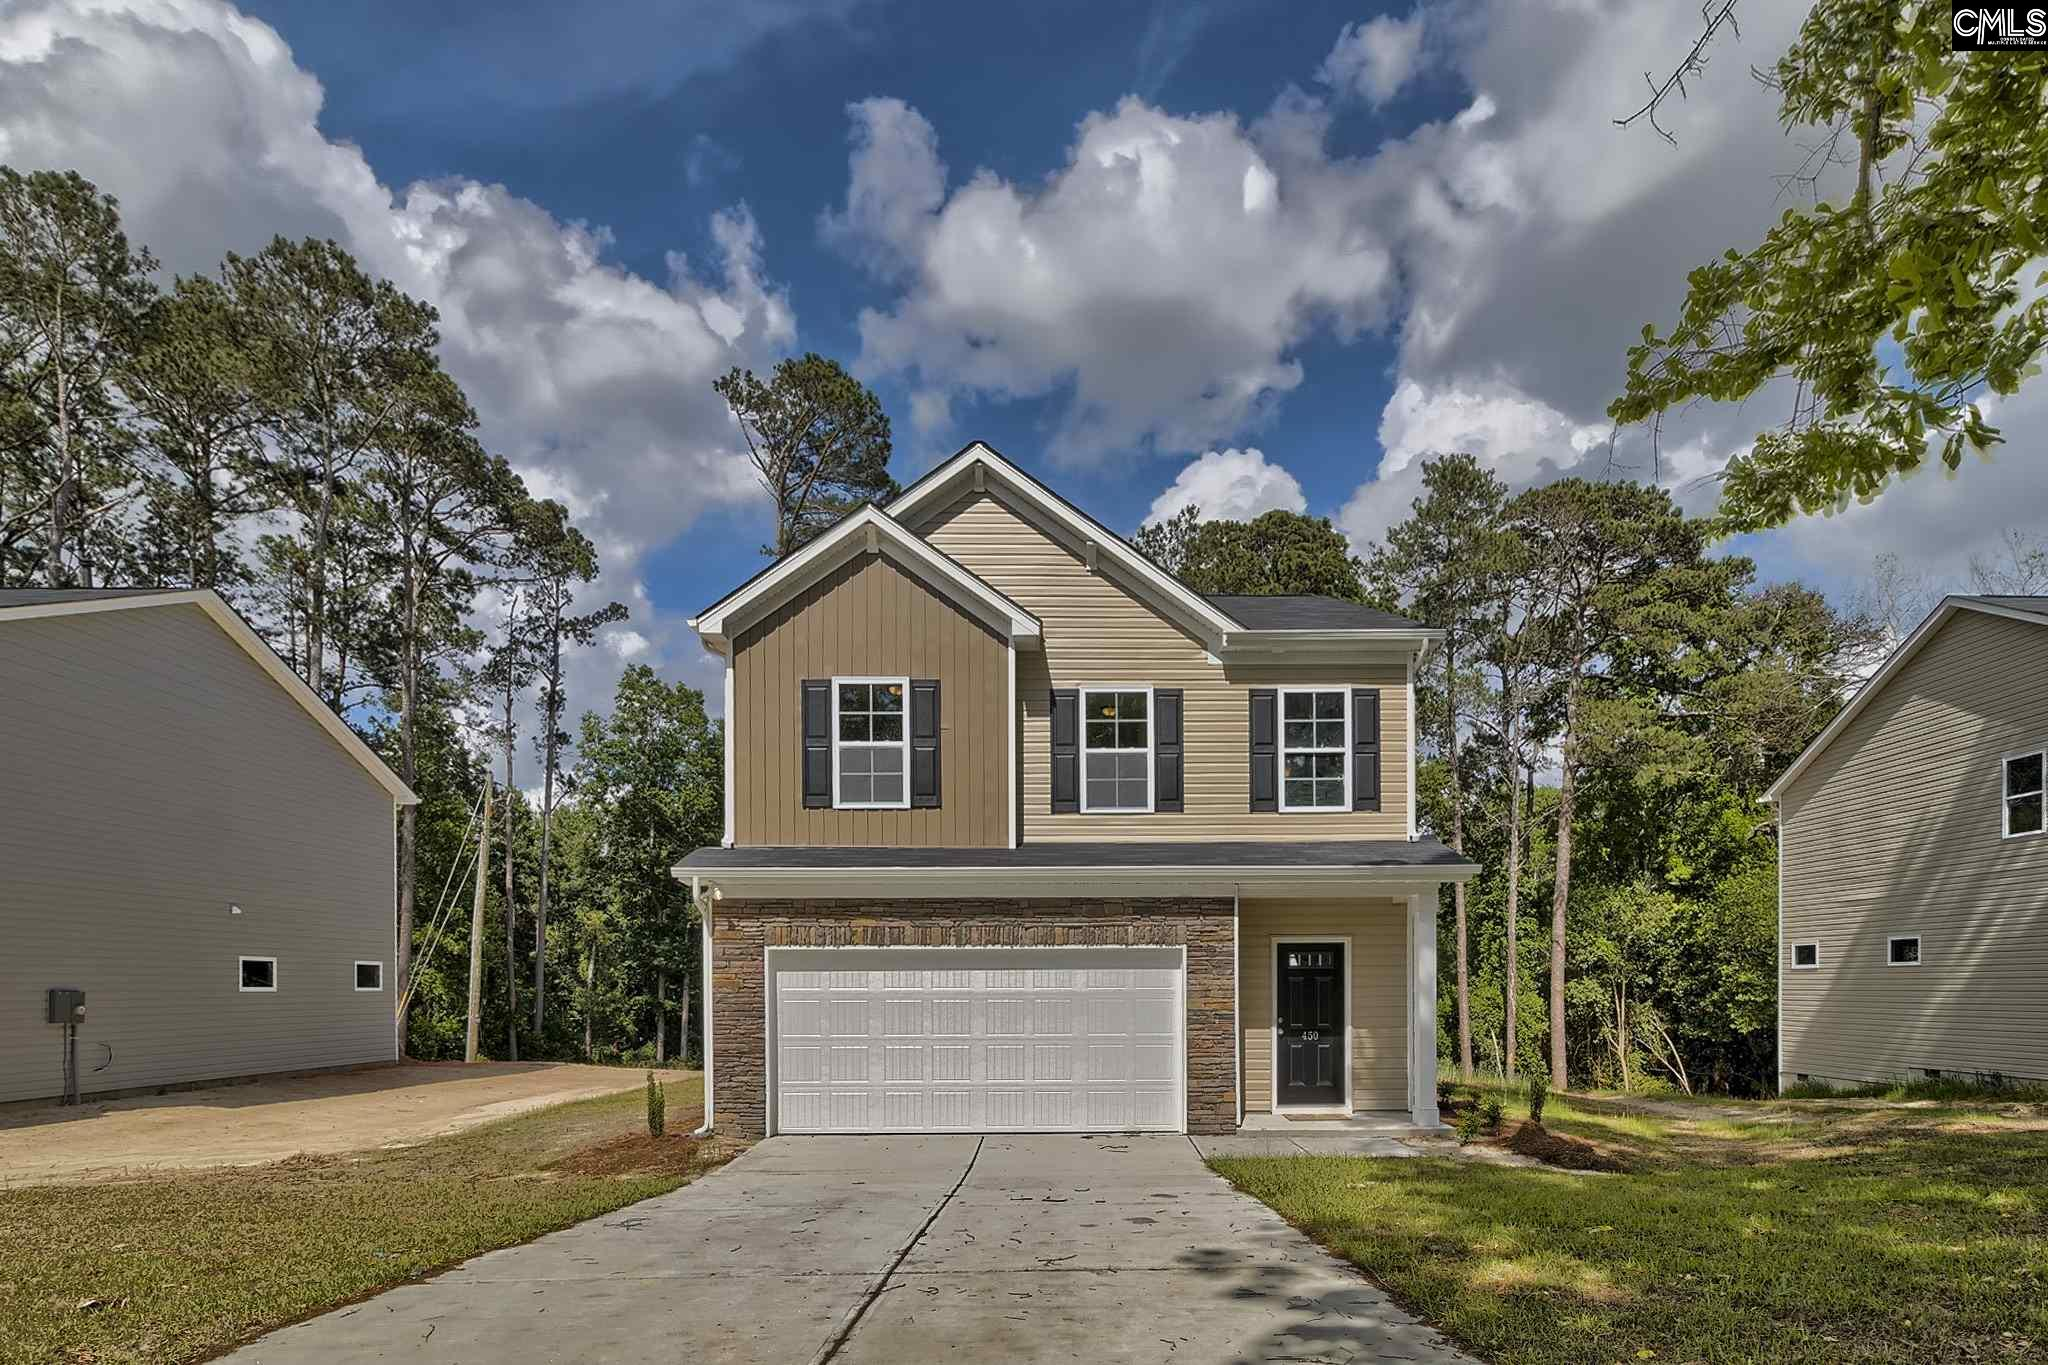 450 North Lee Batesburg, SC 29070